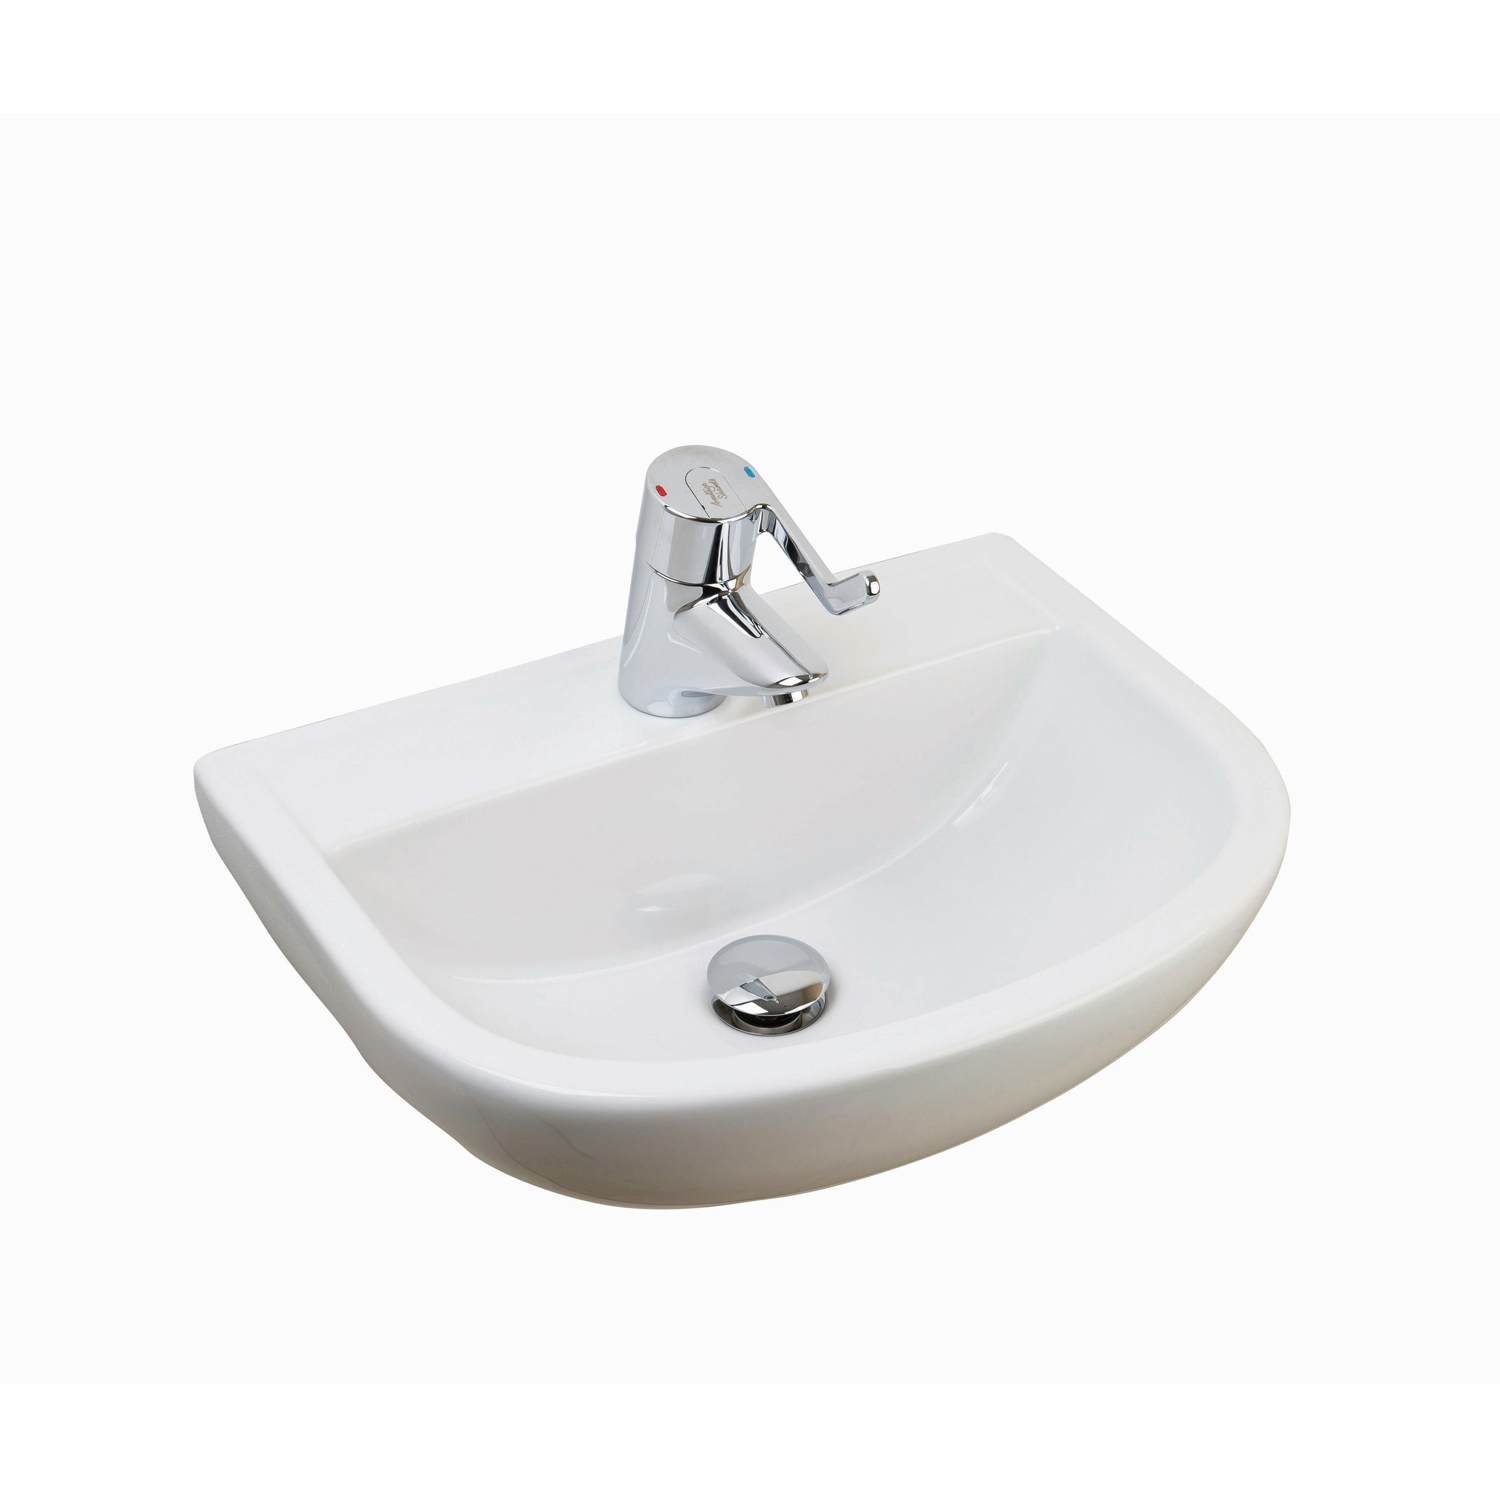 RAK Compact Special Needs Cloakroom Basin 500mm Wide 0 Tap Hole